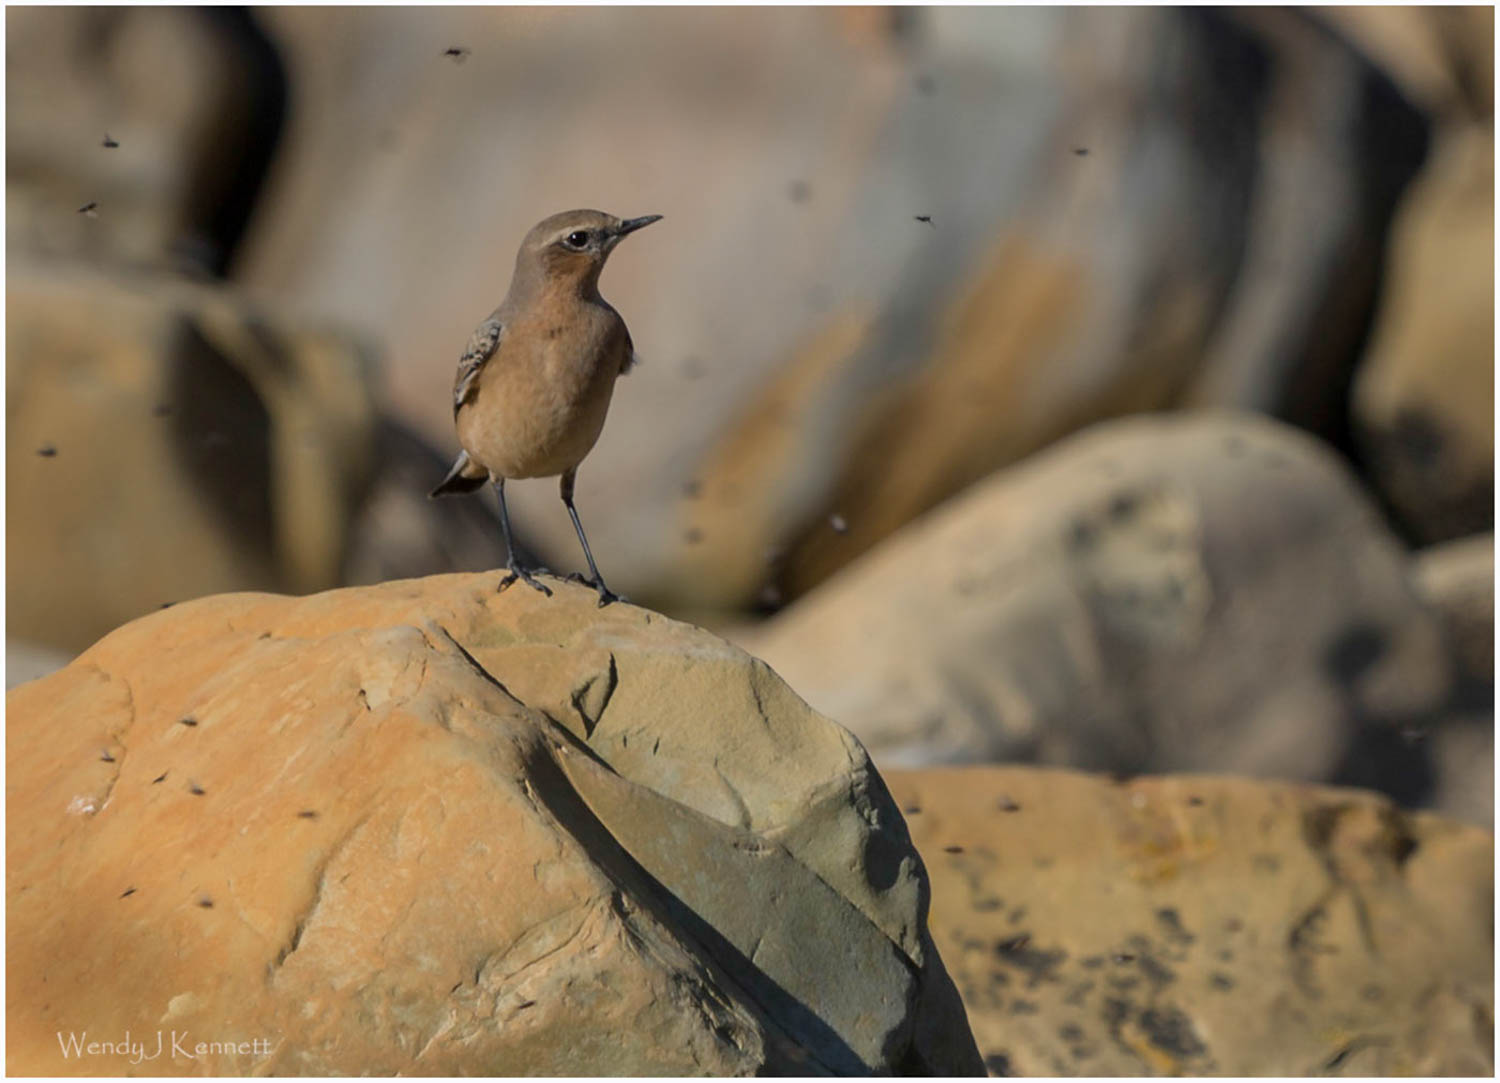 Wheatear catching Flies